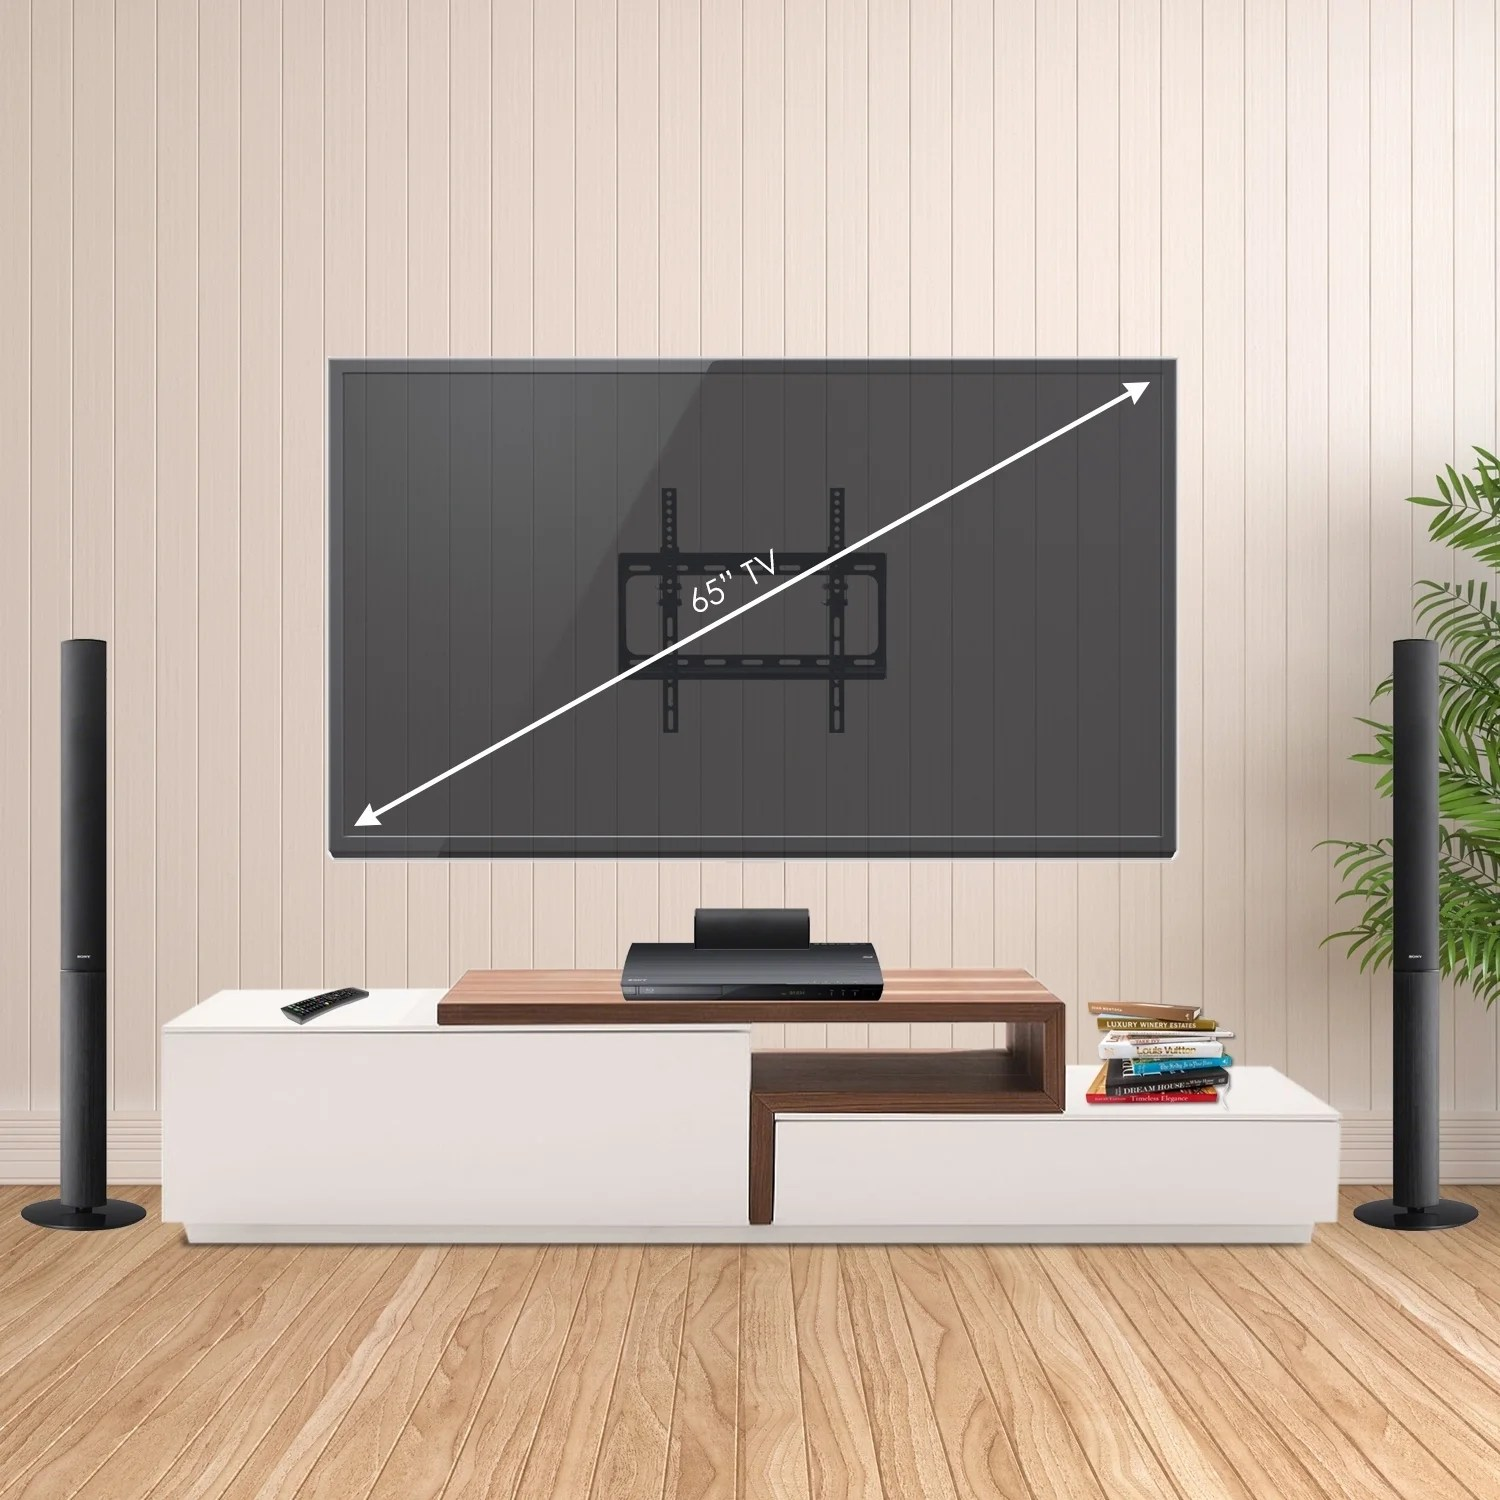 Wood Wall Behind Tv Furinno Modern Wall Mount Tv Bracket For Tv Up To 65 Inch